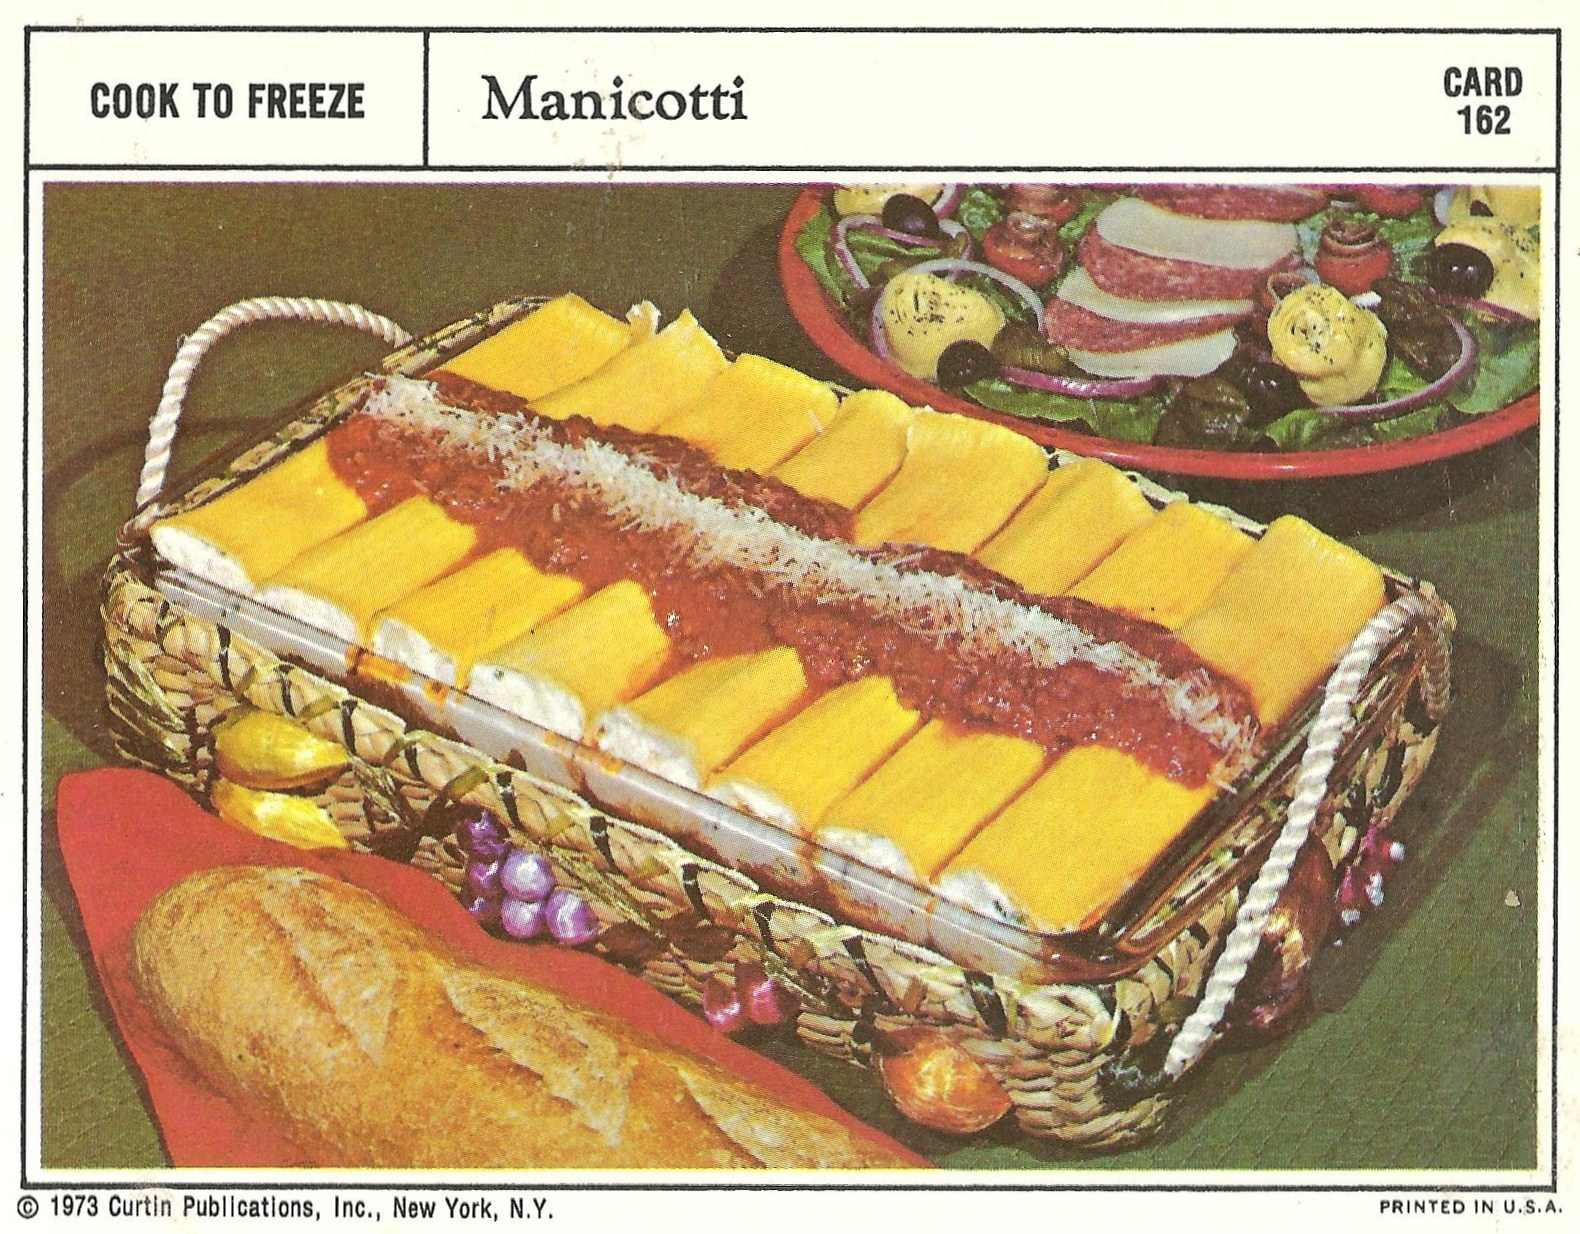 Bad and ugly of retro food 1970s finest recipe cards 17 such perfect manicotti stuffed correctly sauced evenly sprinkle of cheese whats this i see ripped noodles and sauce leaking into the spaces forumfinder Choice Image